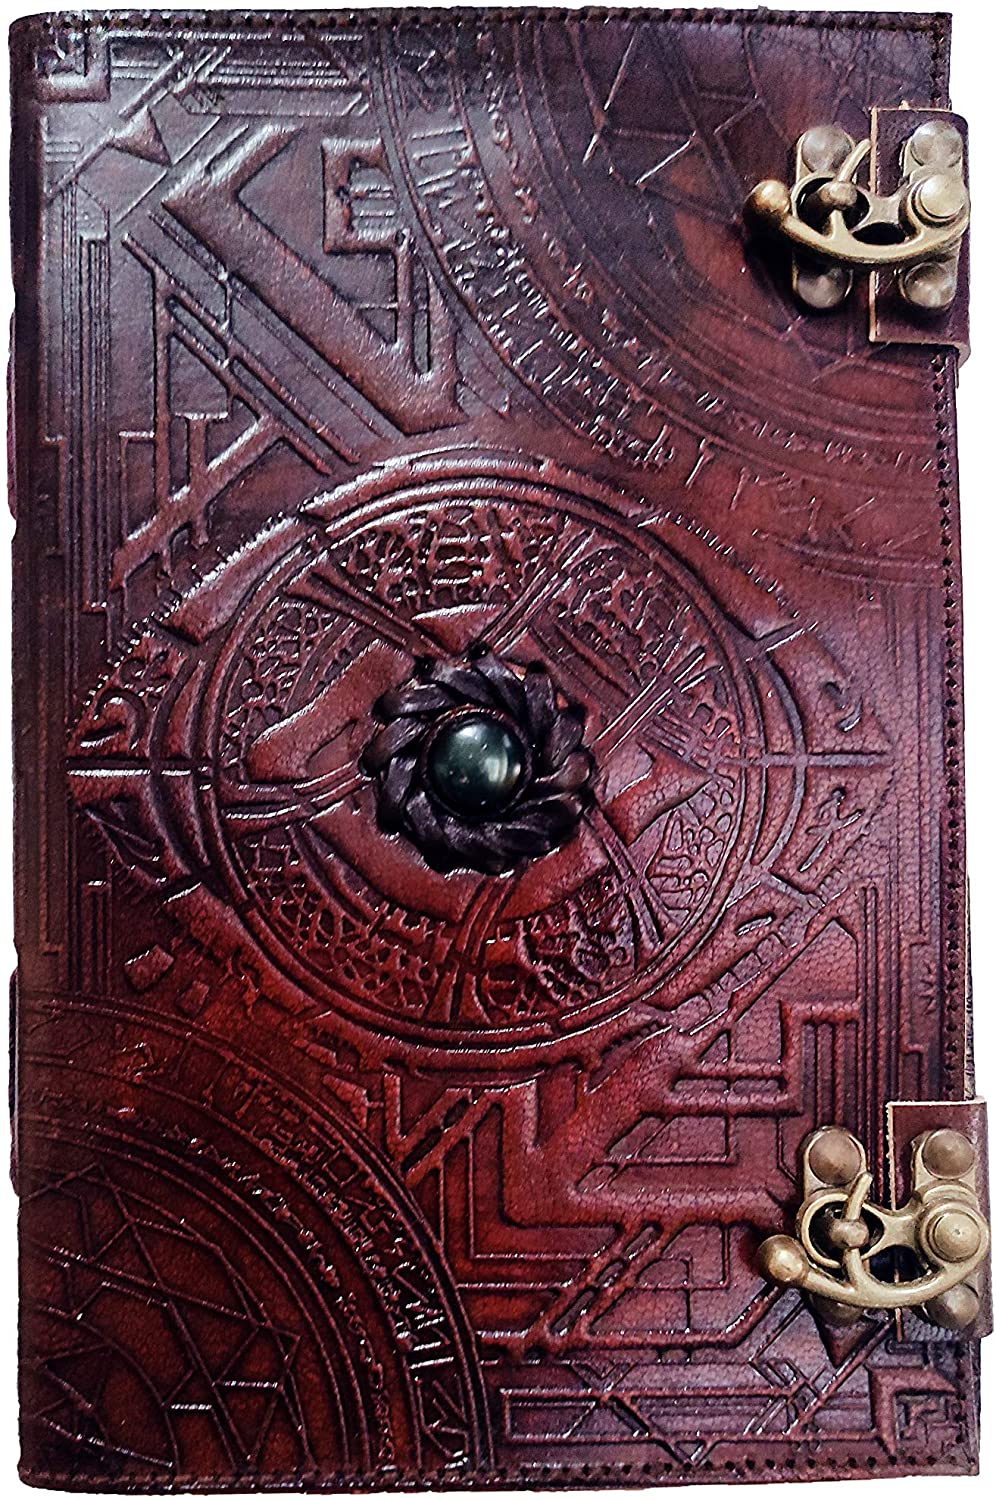 Doctor Strange Eye of Agamotto Embossed Handmade Stone Leather Journal Art Sketchbook Travel Diary with Vintage Lock Latch